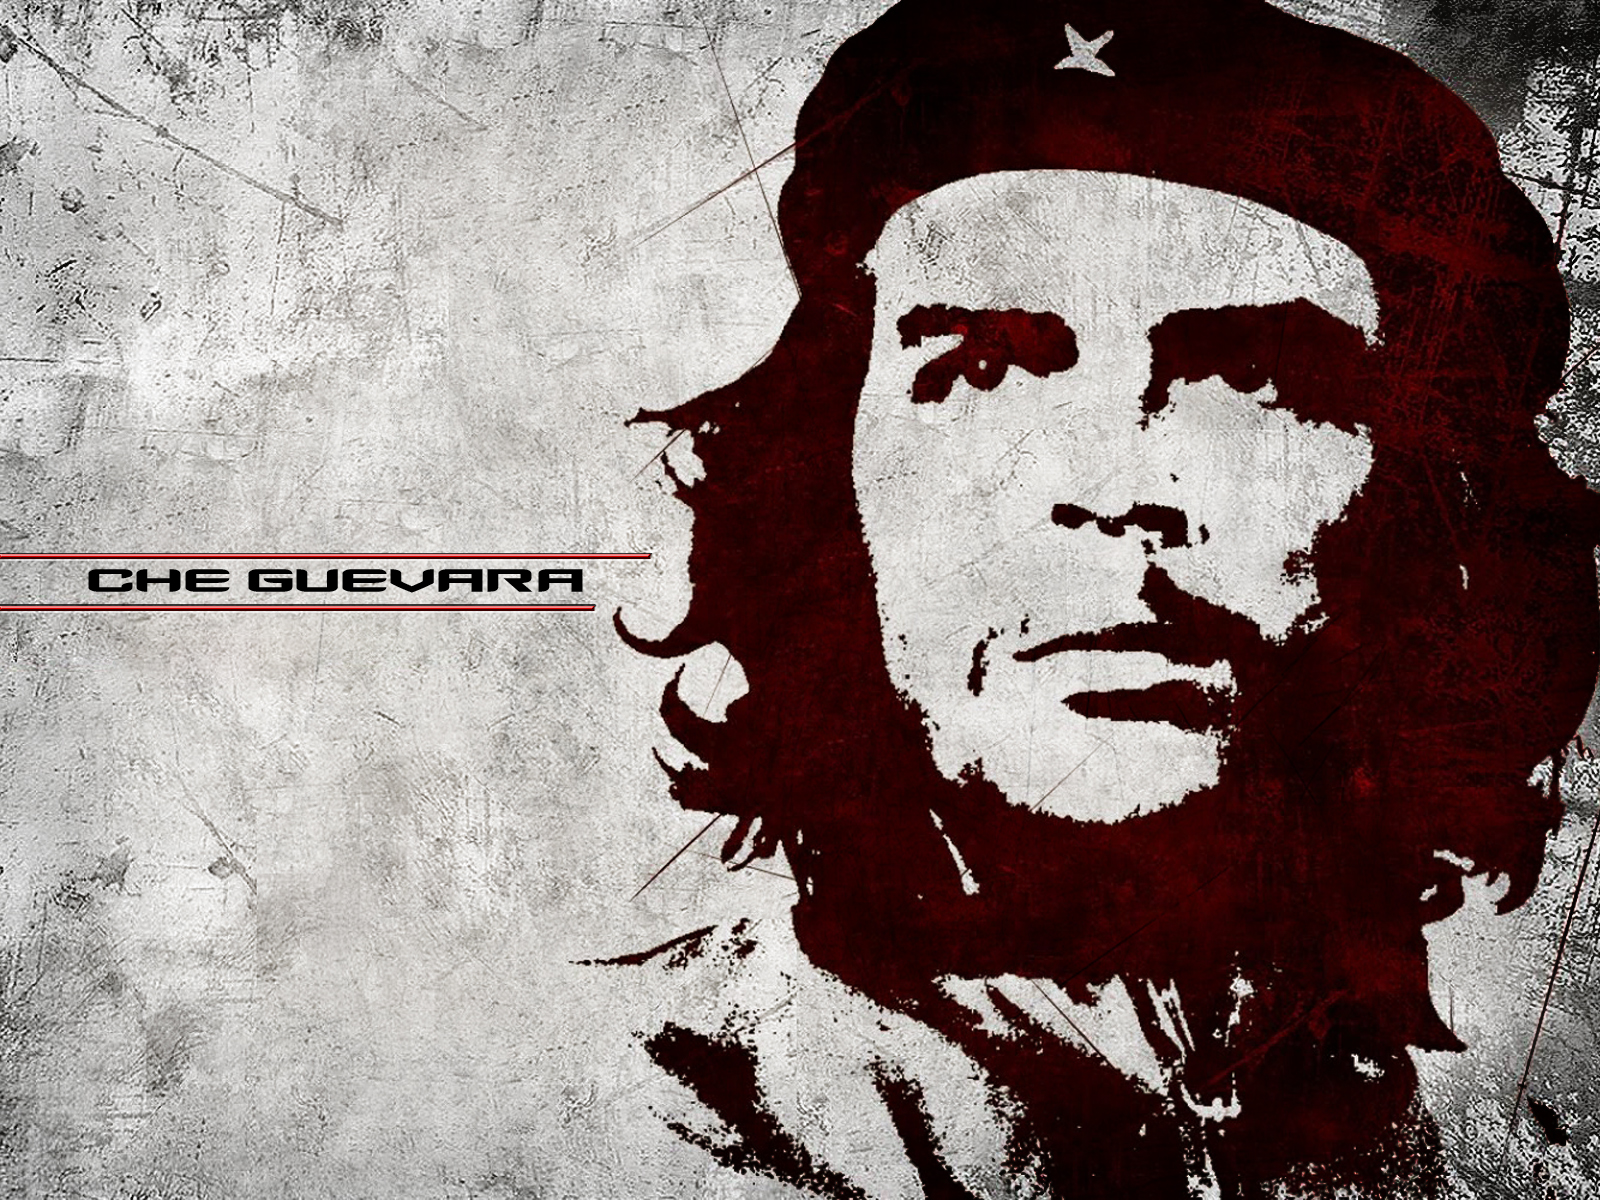 Coole K Che cool hd wallpapers che guevara wallpapers